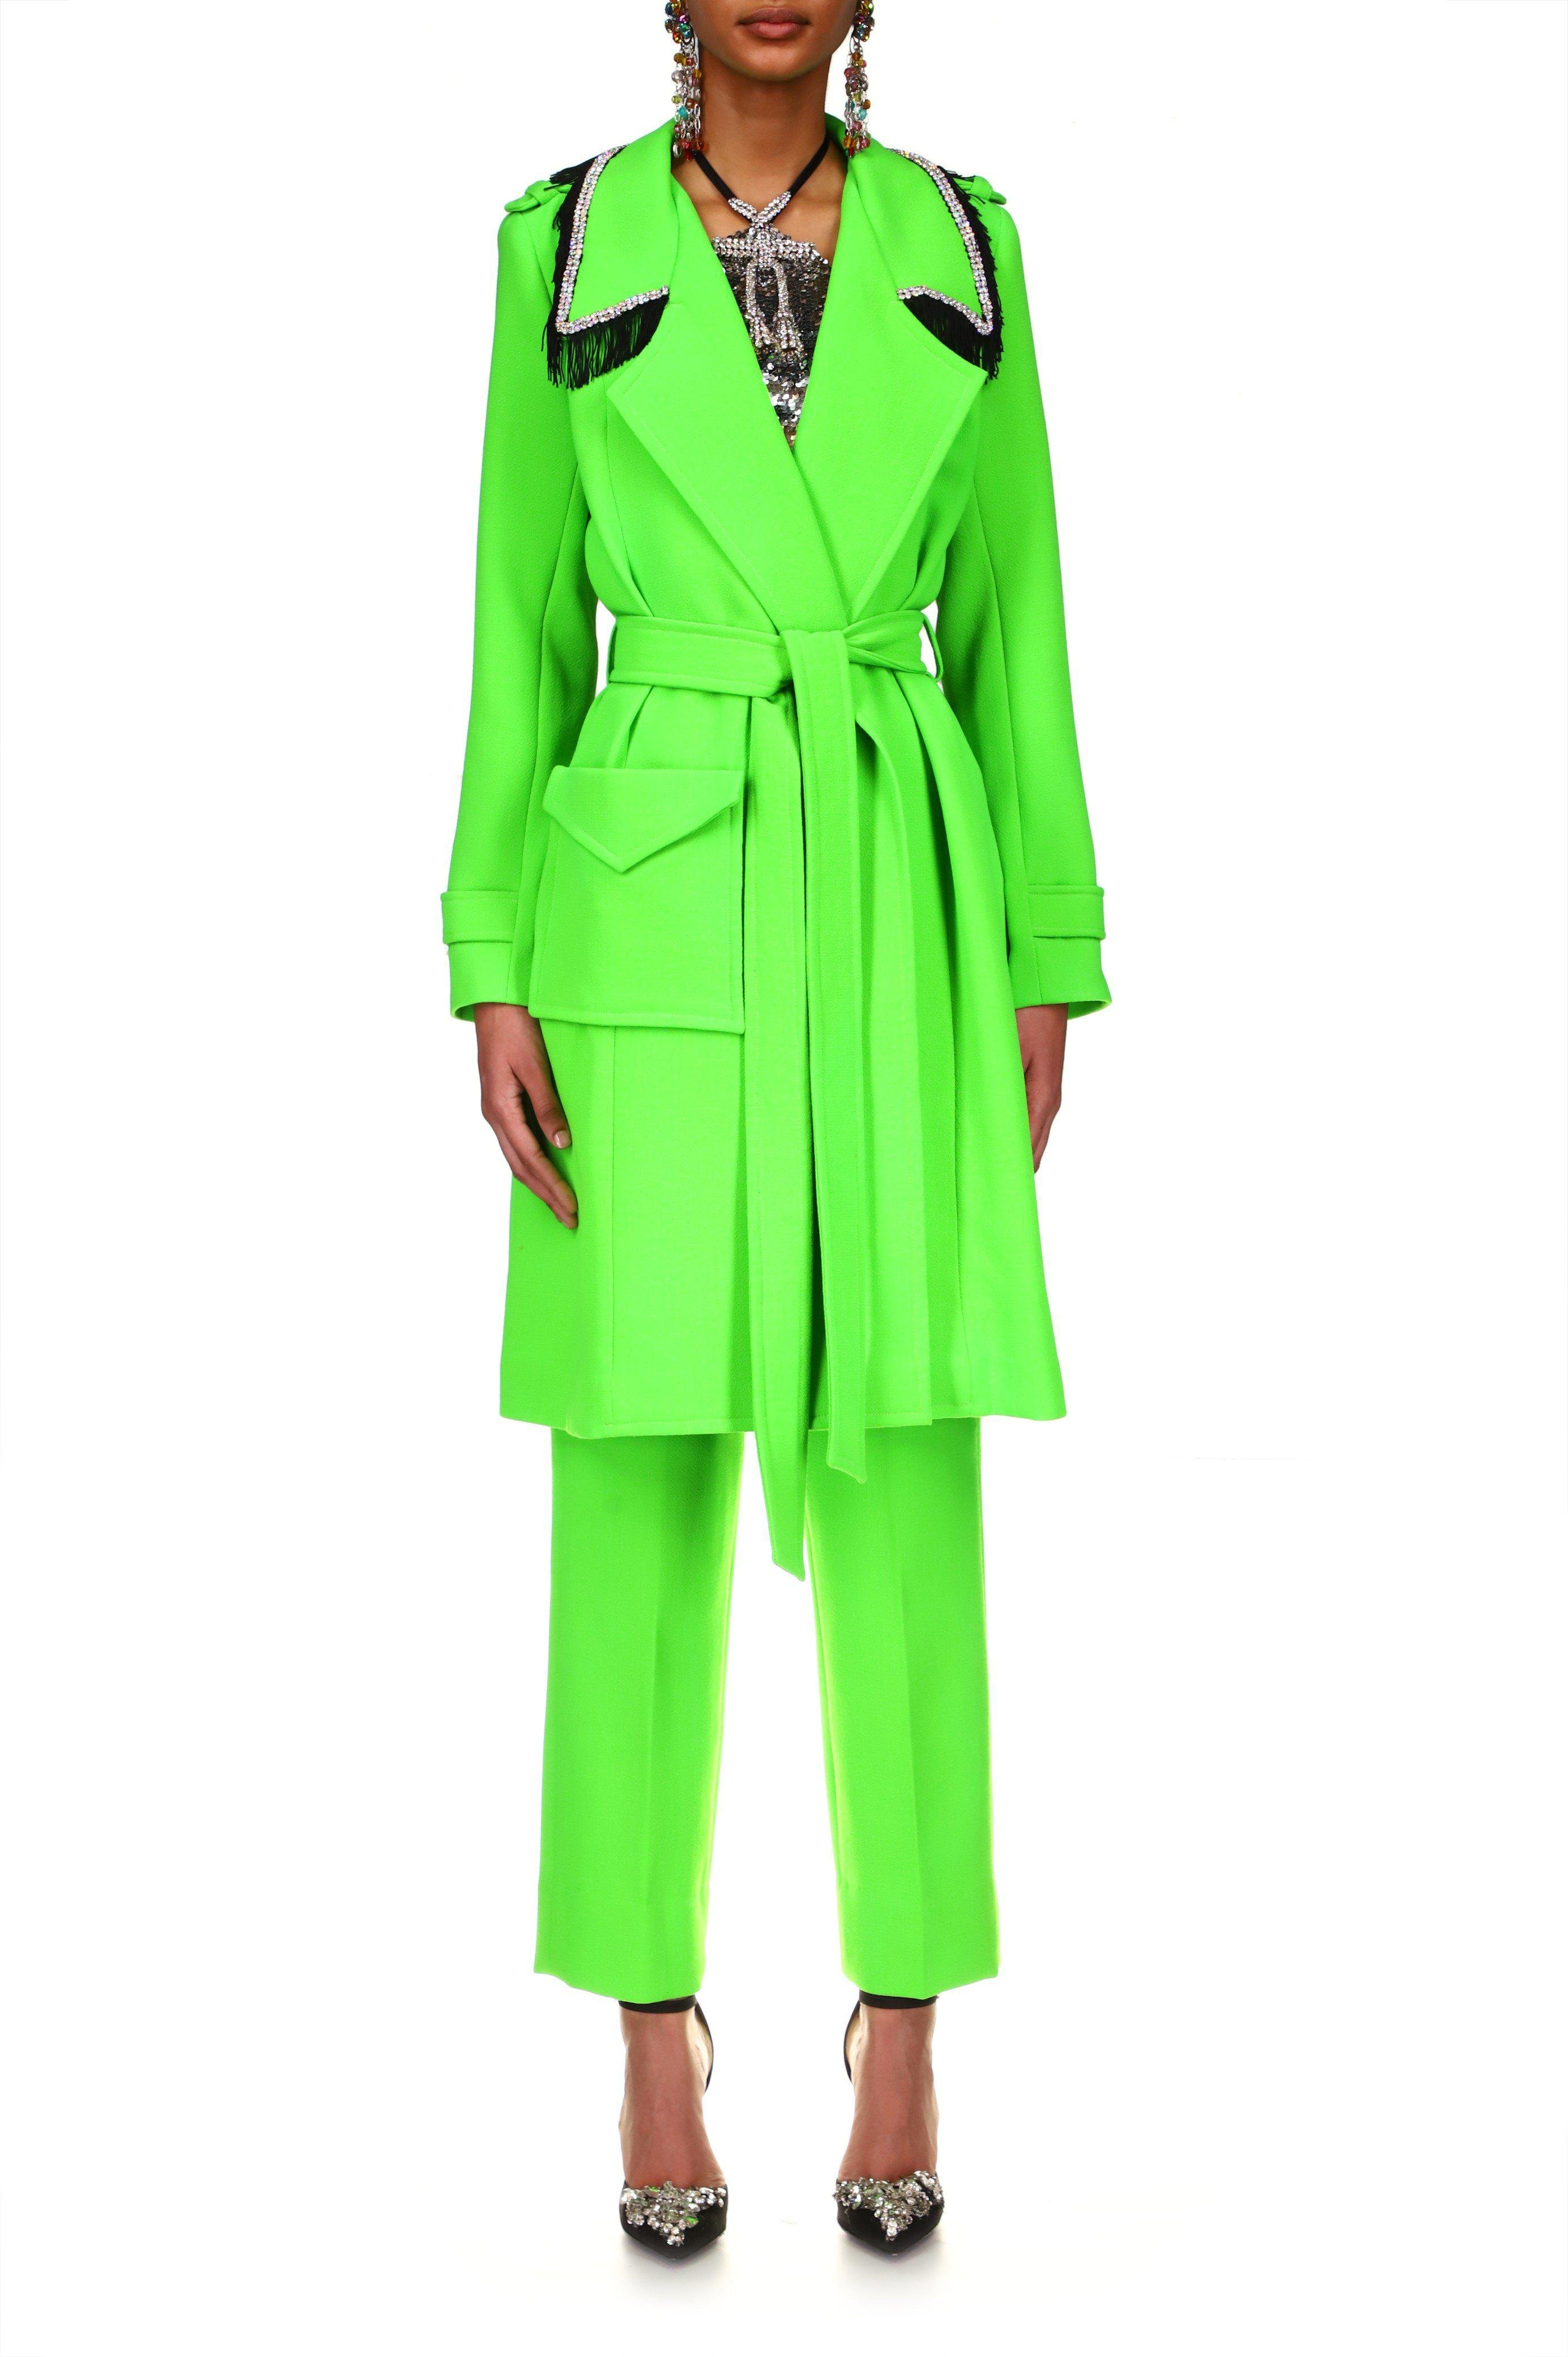 NEON GREEN WOOL TRENCH COAT WITH RHINESTONE AND FRINGE DETAIL